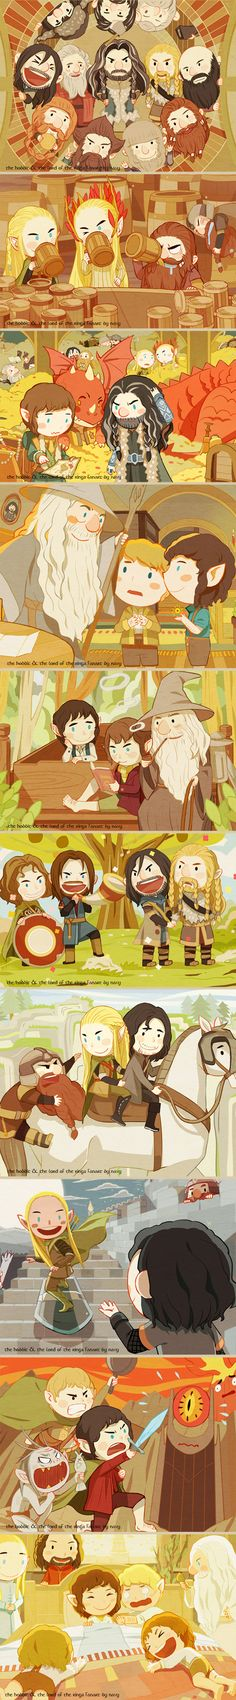 GAHAHA SAURON AND MOUNT DOOM ARE A LITTLE INTIMIDATED... LOL FARAMIR AND BOROMIR MEETING FILI AND KILI THO 😂... Gimli! Thranduil and Legolas what are they even doing